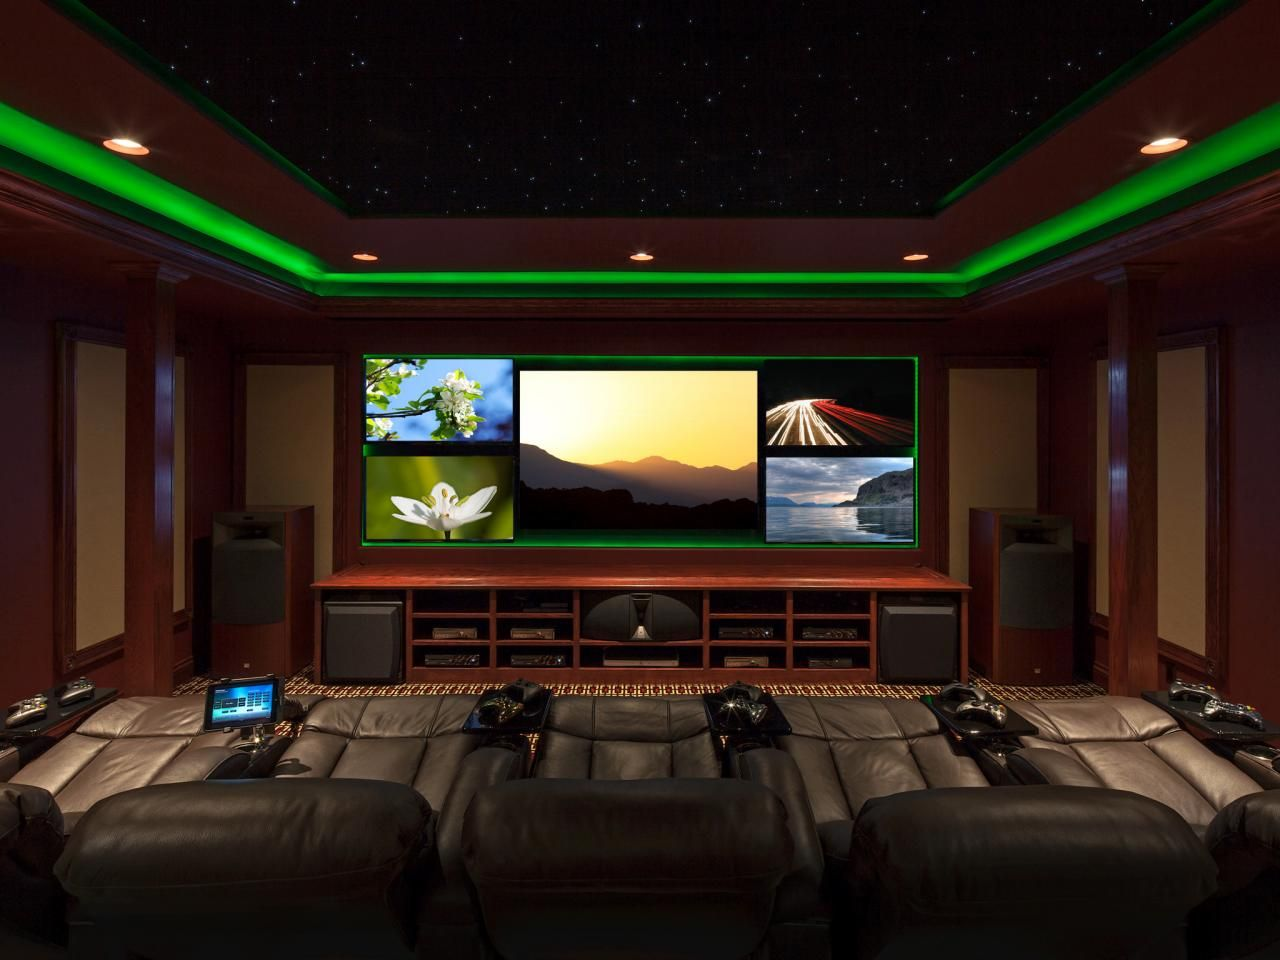 47 epic video game room decoration ideas for 2018 game rooms gaming and room Room decorating games for adults